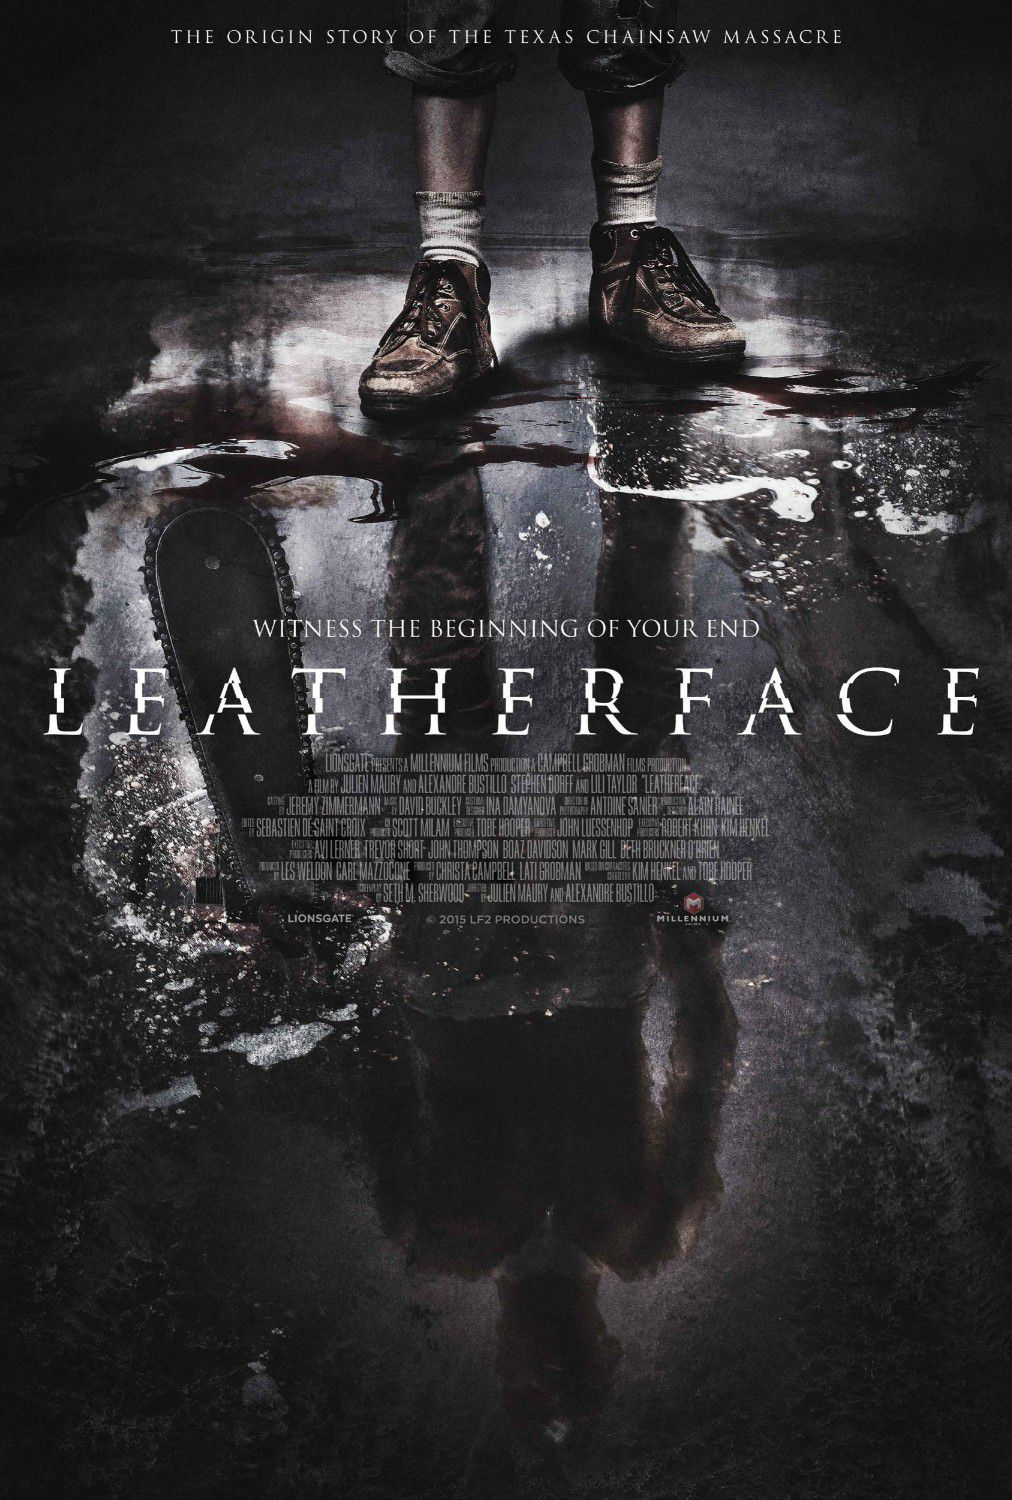 Leatherface - the origin story of the Texas Chainsaw Massacre - horror film poster